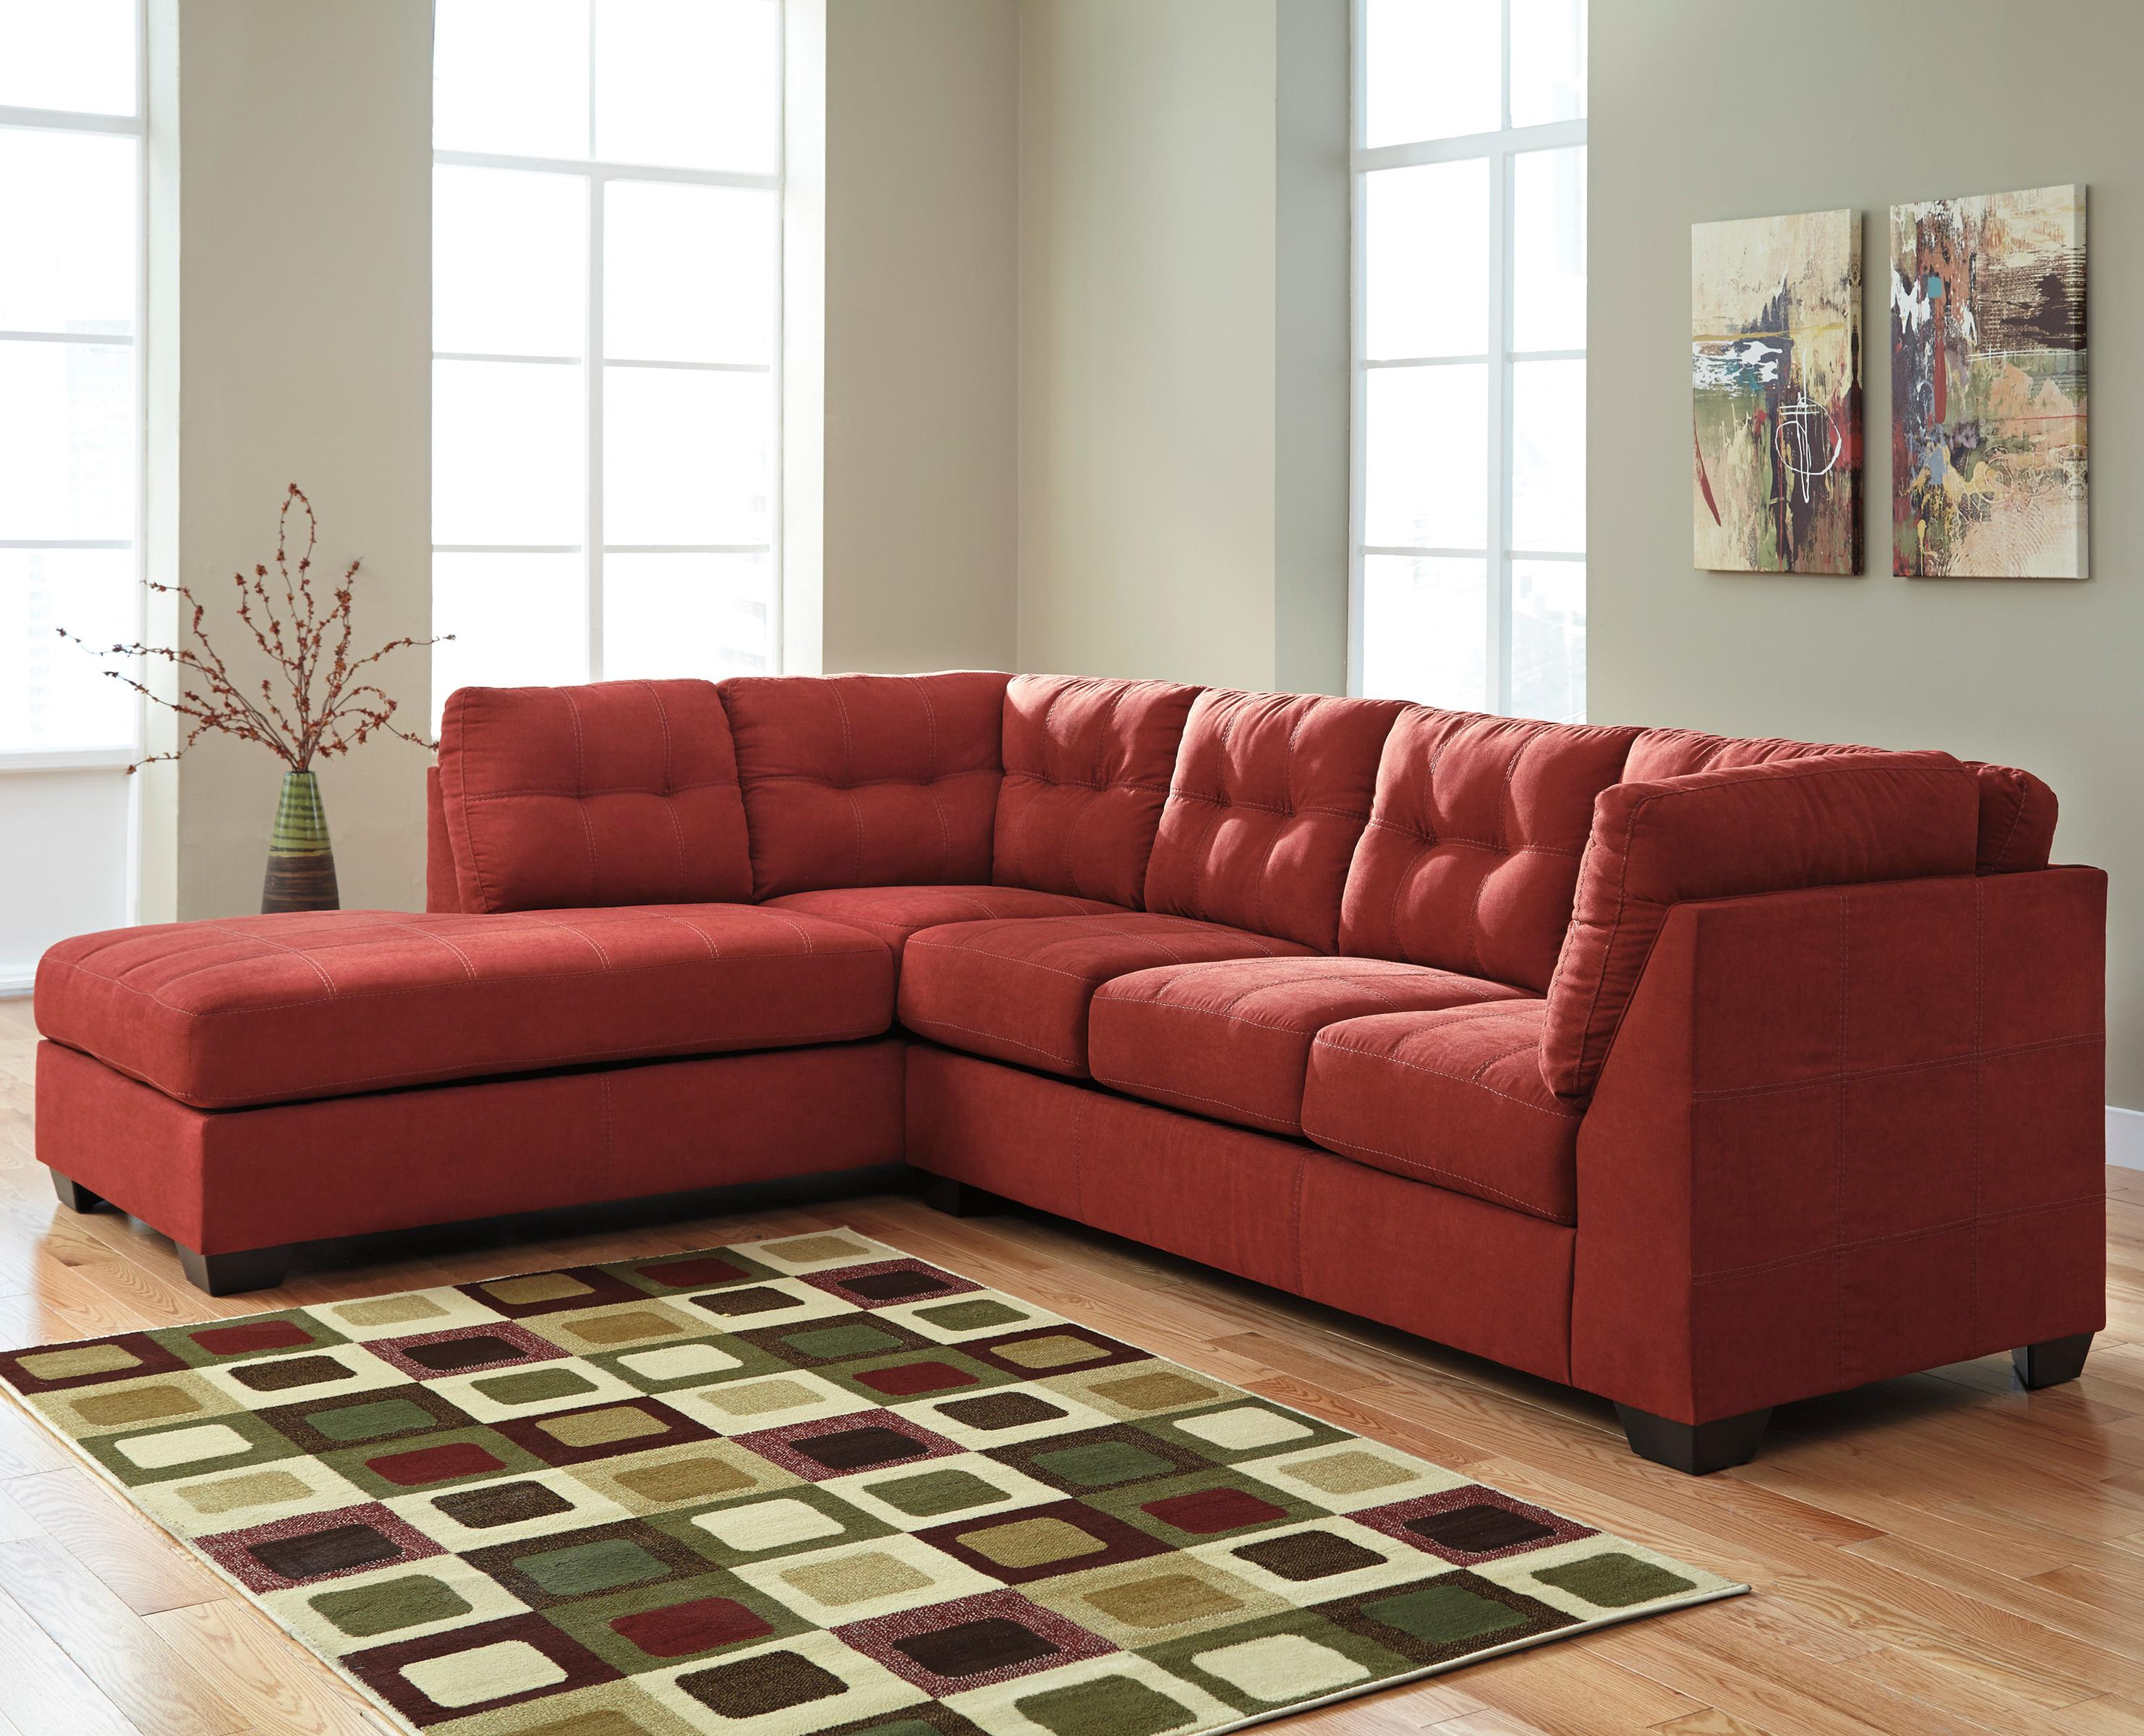 Benchcraft Maier - Sienna 2-Piece Sectional w/ Sleeper Sofa & Ch - Item Number: 4520216+83